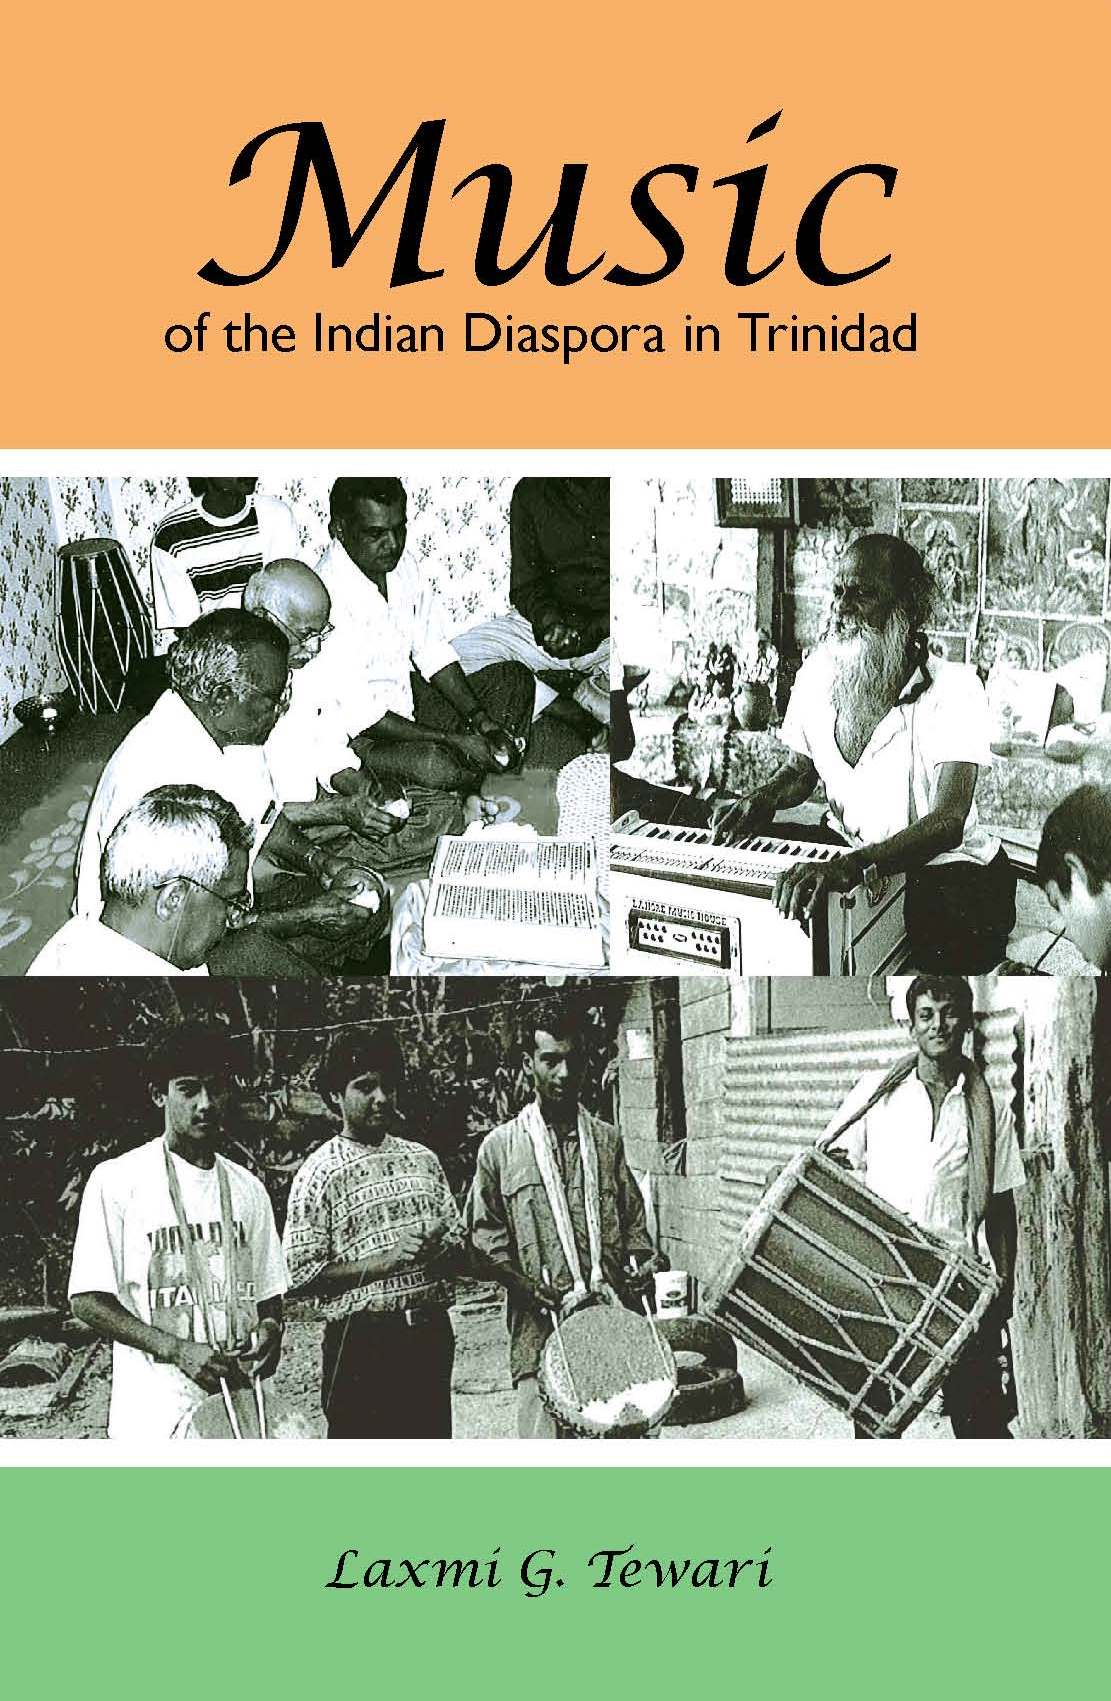 Music of the Indian Diaspora in Trinidad (with CD)